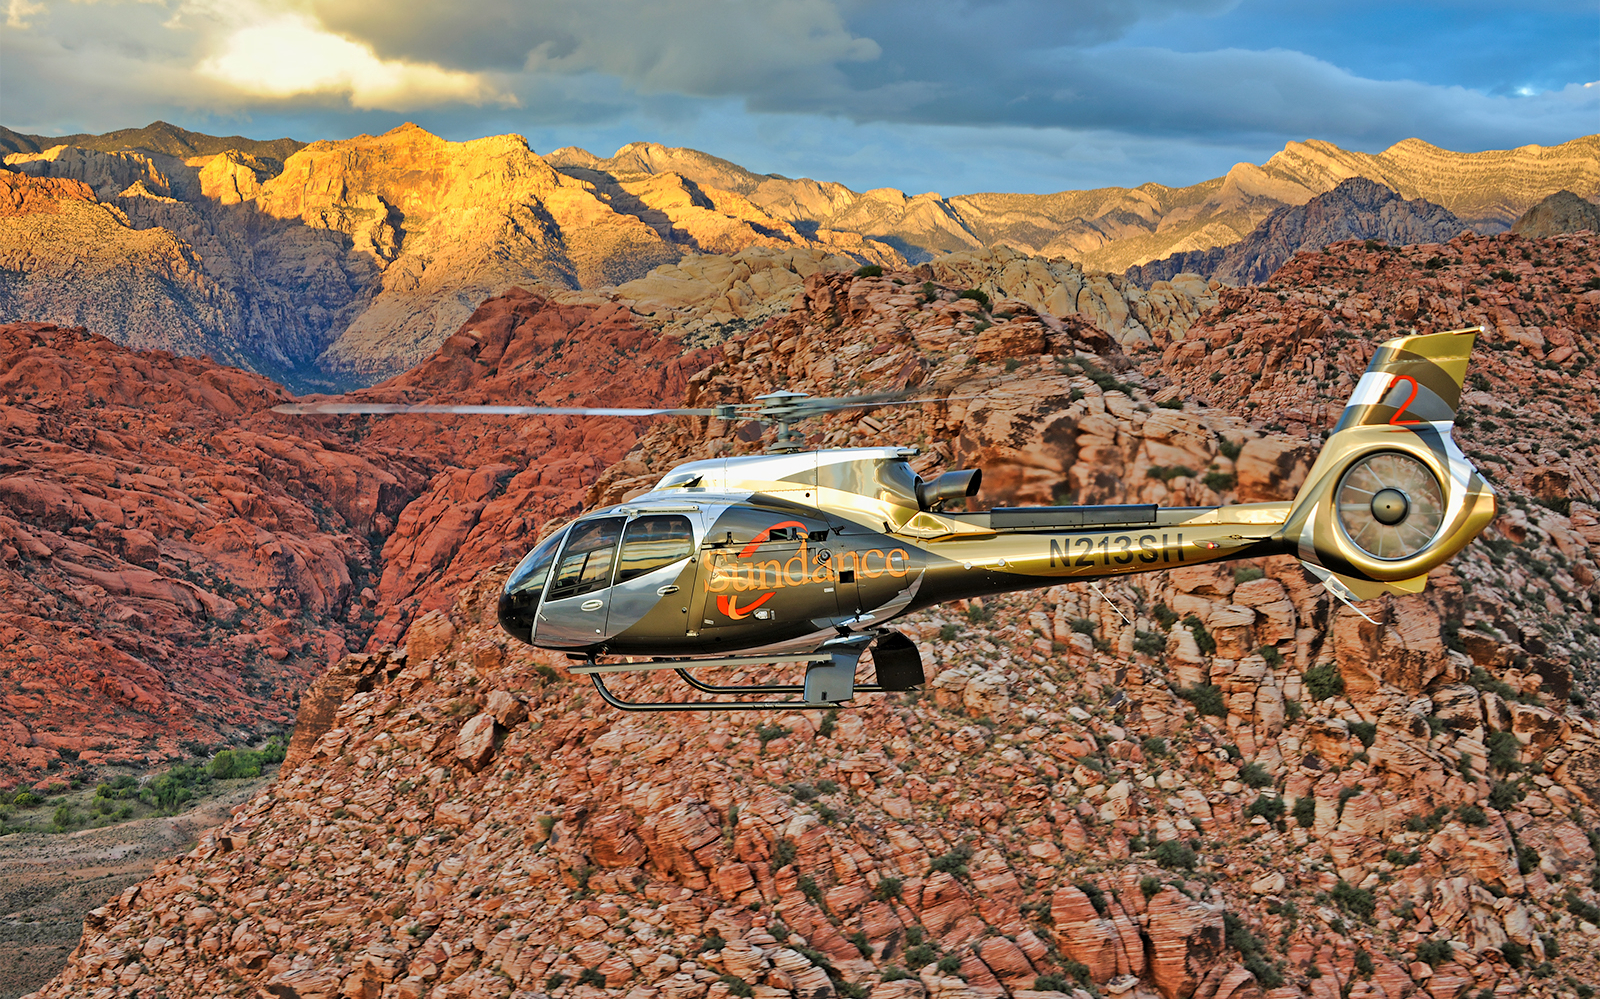 Grand Canyon West Rim Skywalk Express Helicopter Tour